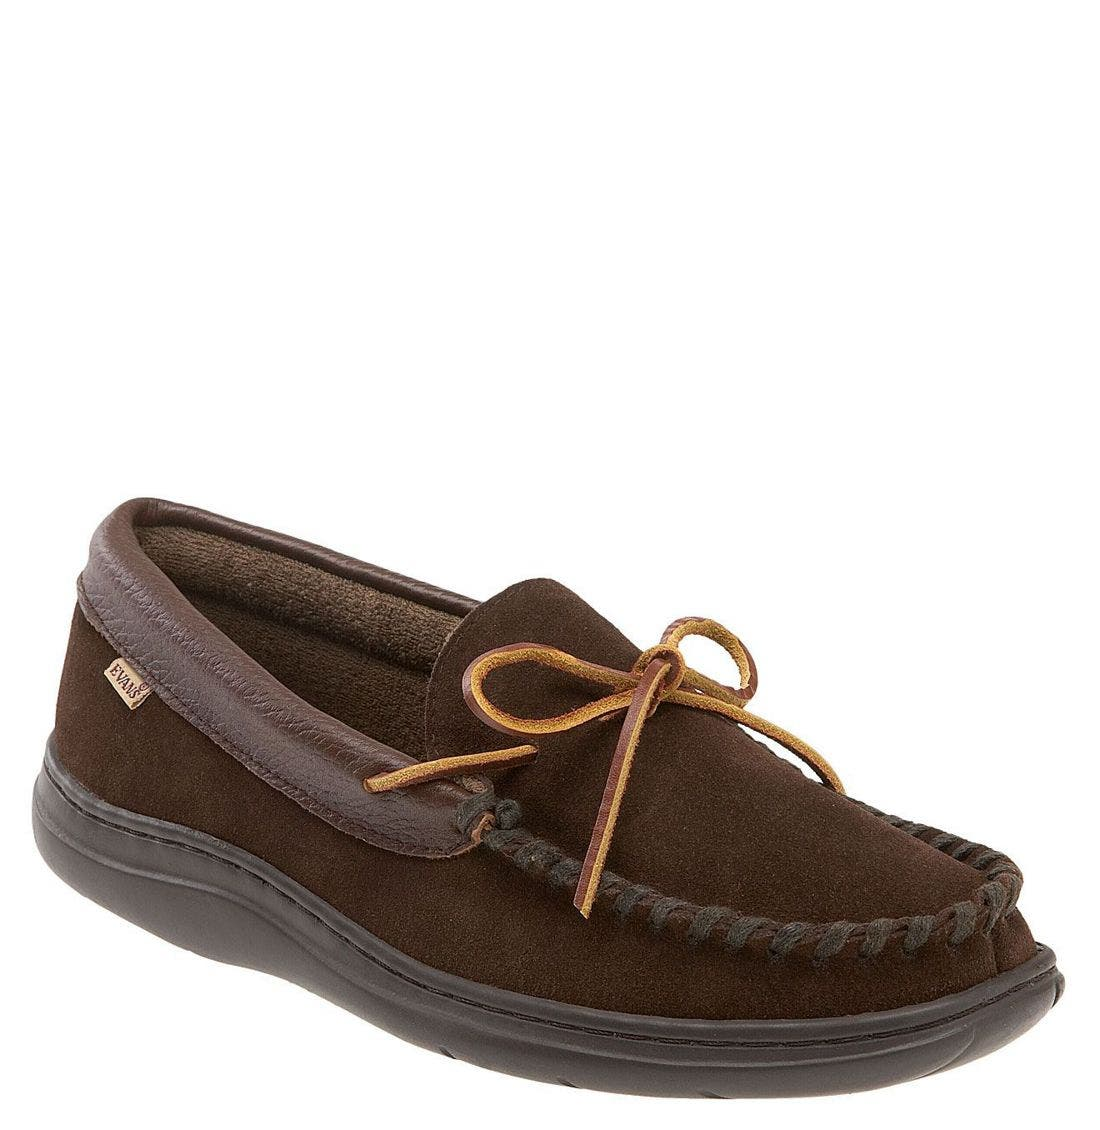 'Atlin' Moccasin,                             Main thumbnail 1, color,                             Chocolate/ Terry